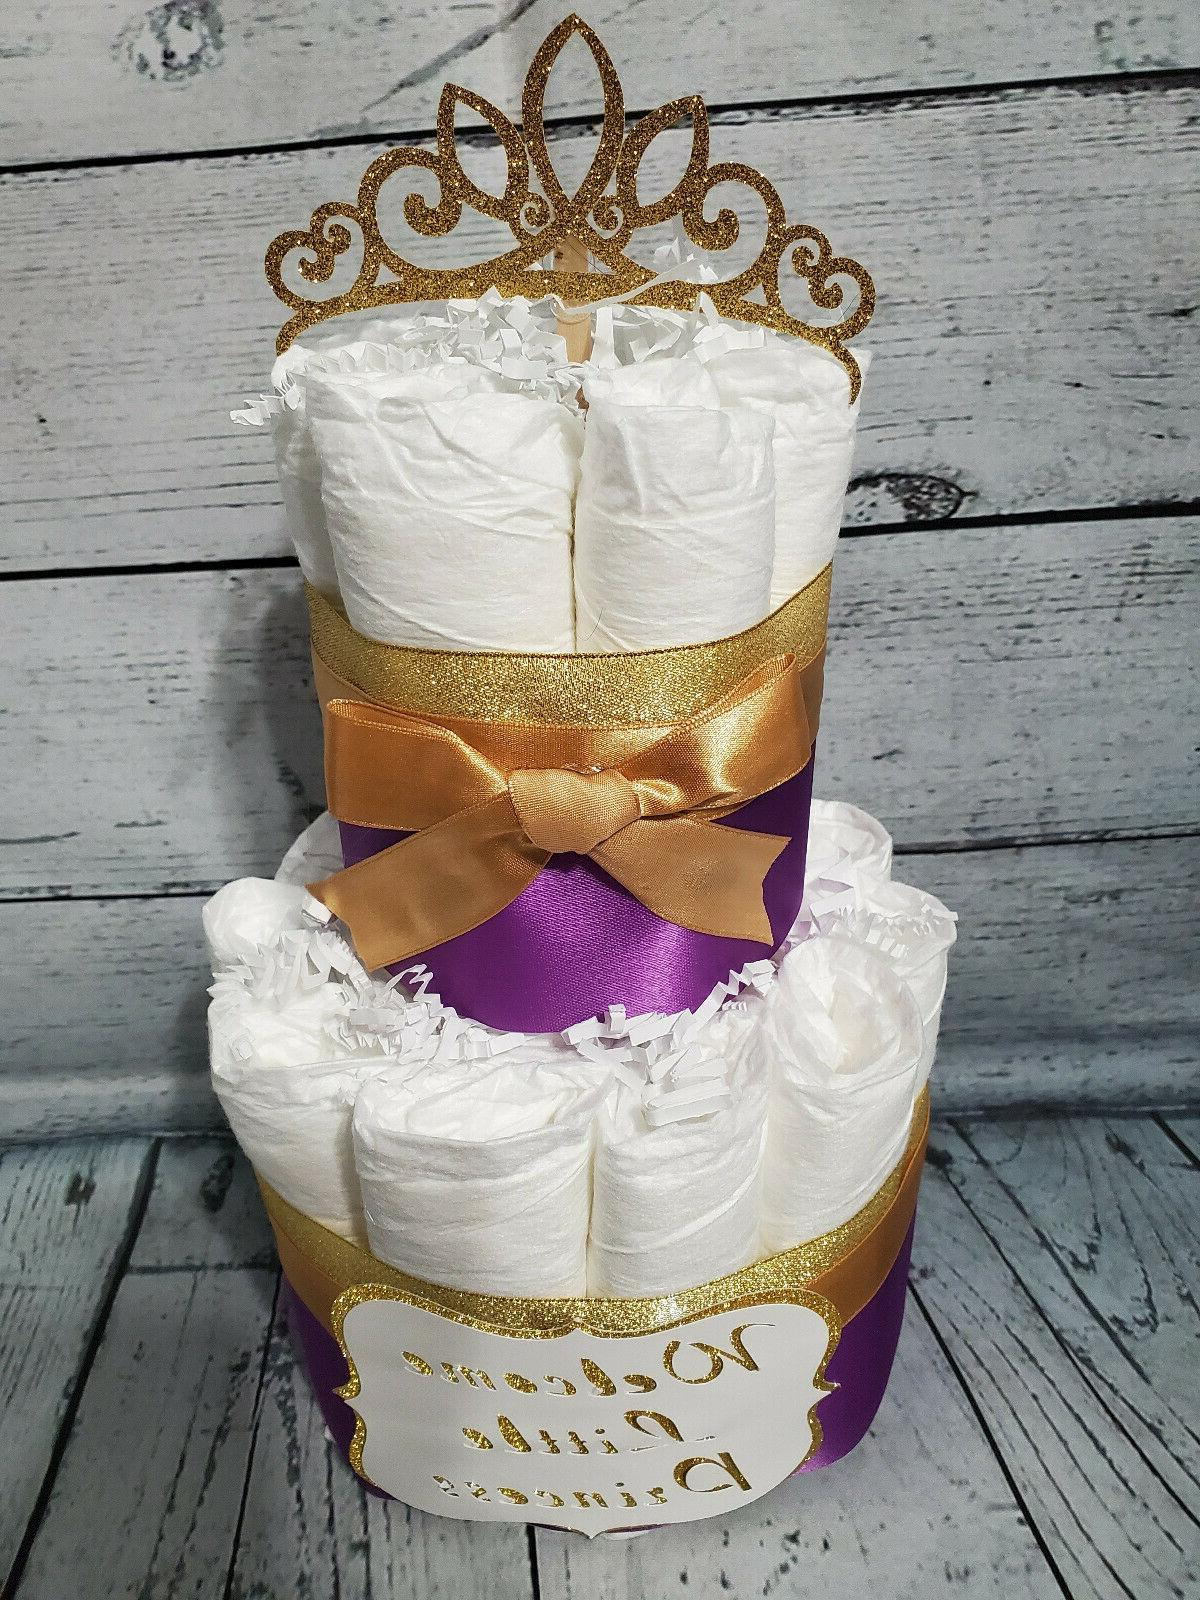 2 - Royal Purple and Gold Princess Cake for Baby